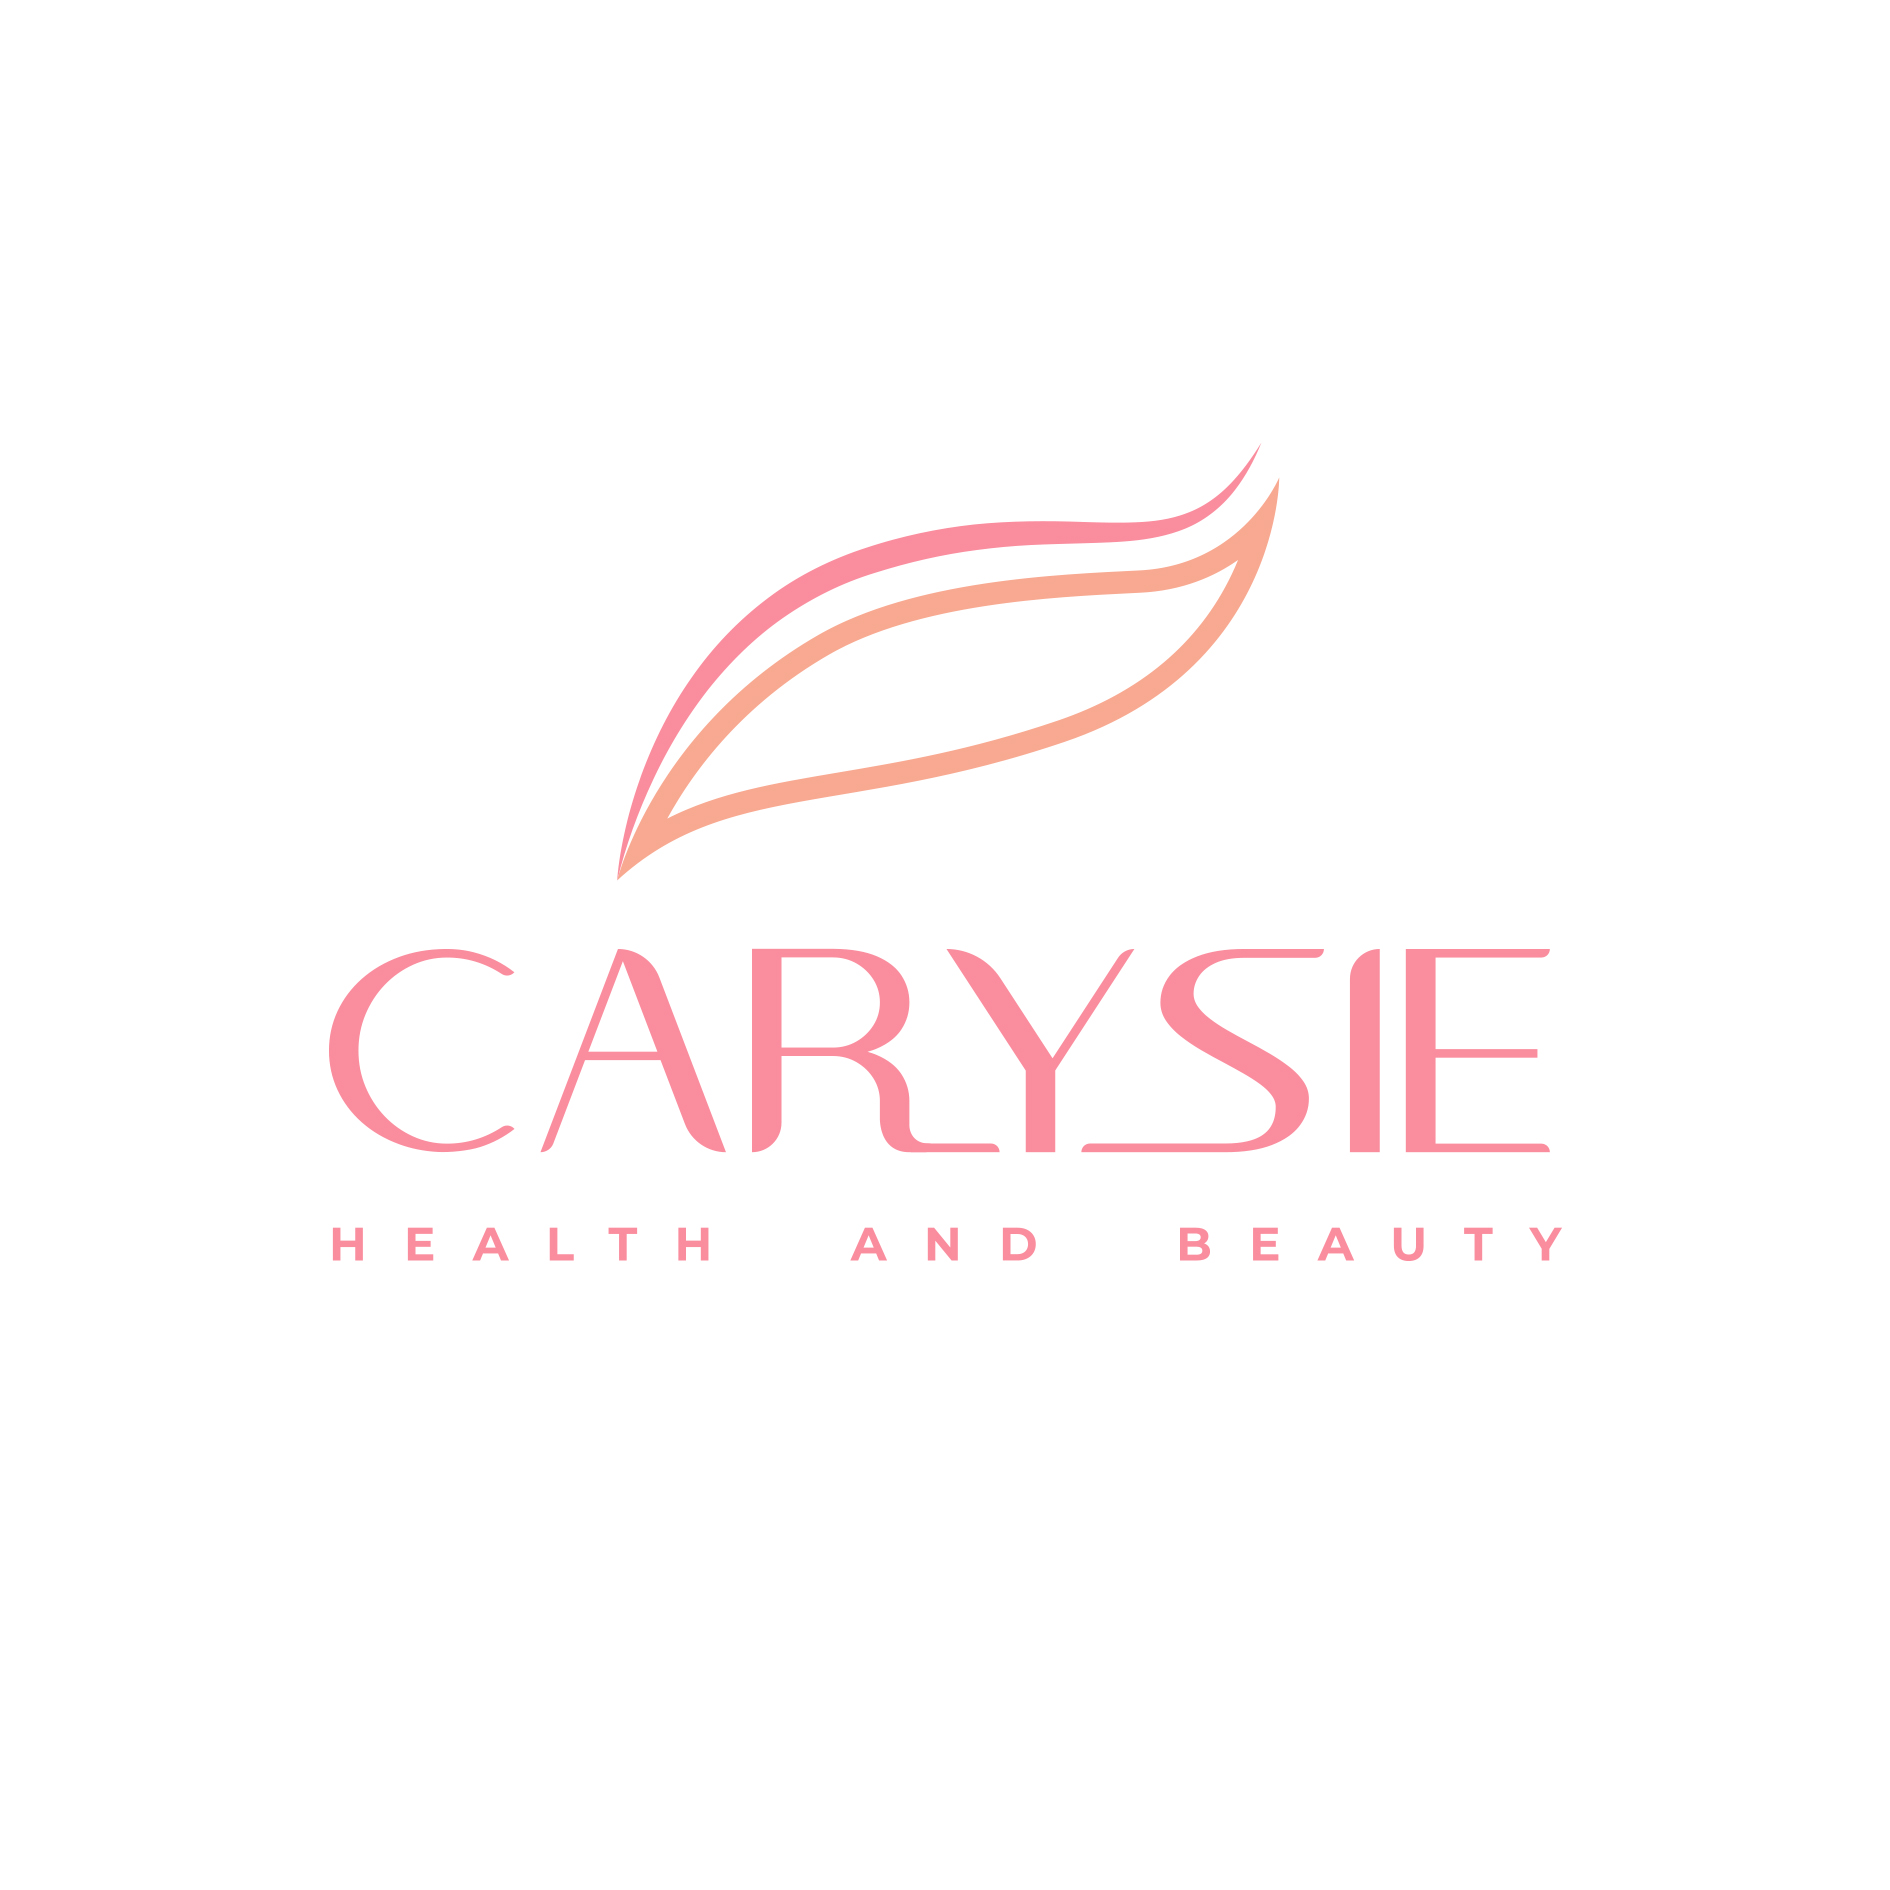 CARYSIE Health and Beauty   CARYSIE is the online store focuses on providing Japanese and Korean beauty products and supplements located in San Jose, California, USA.